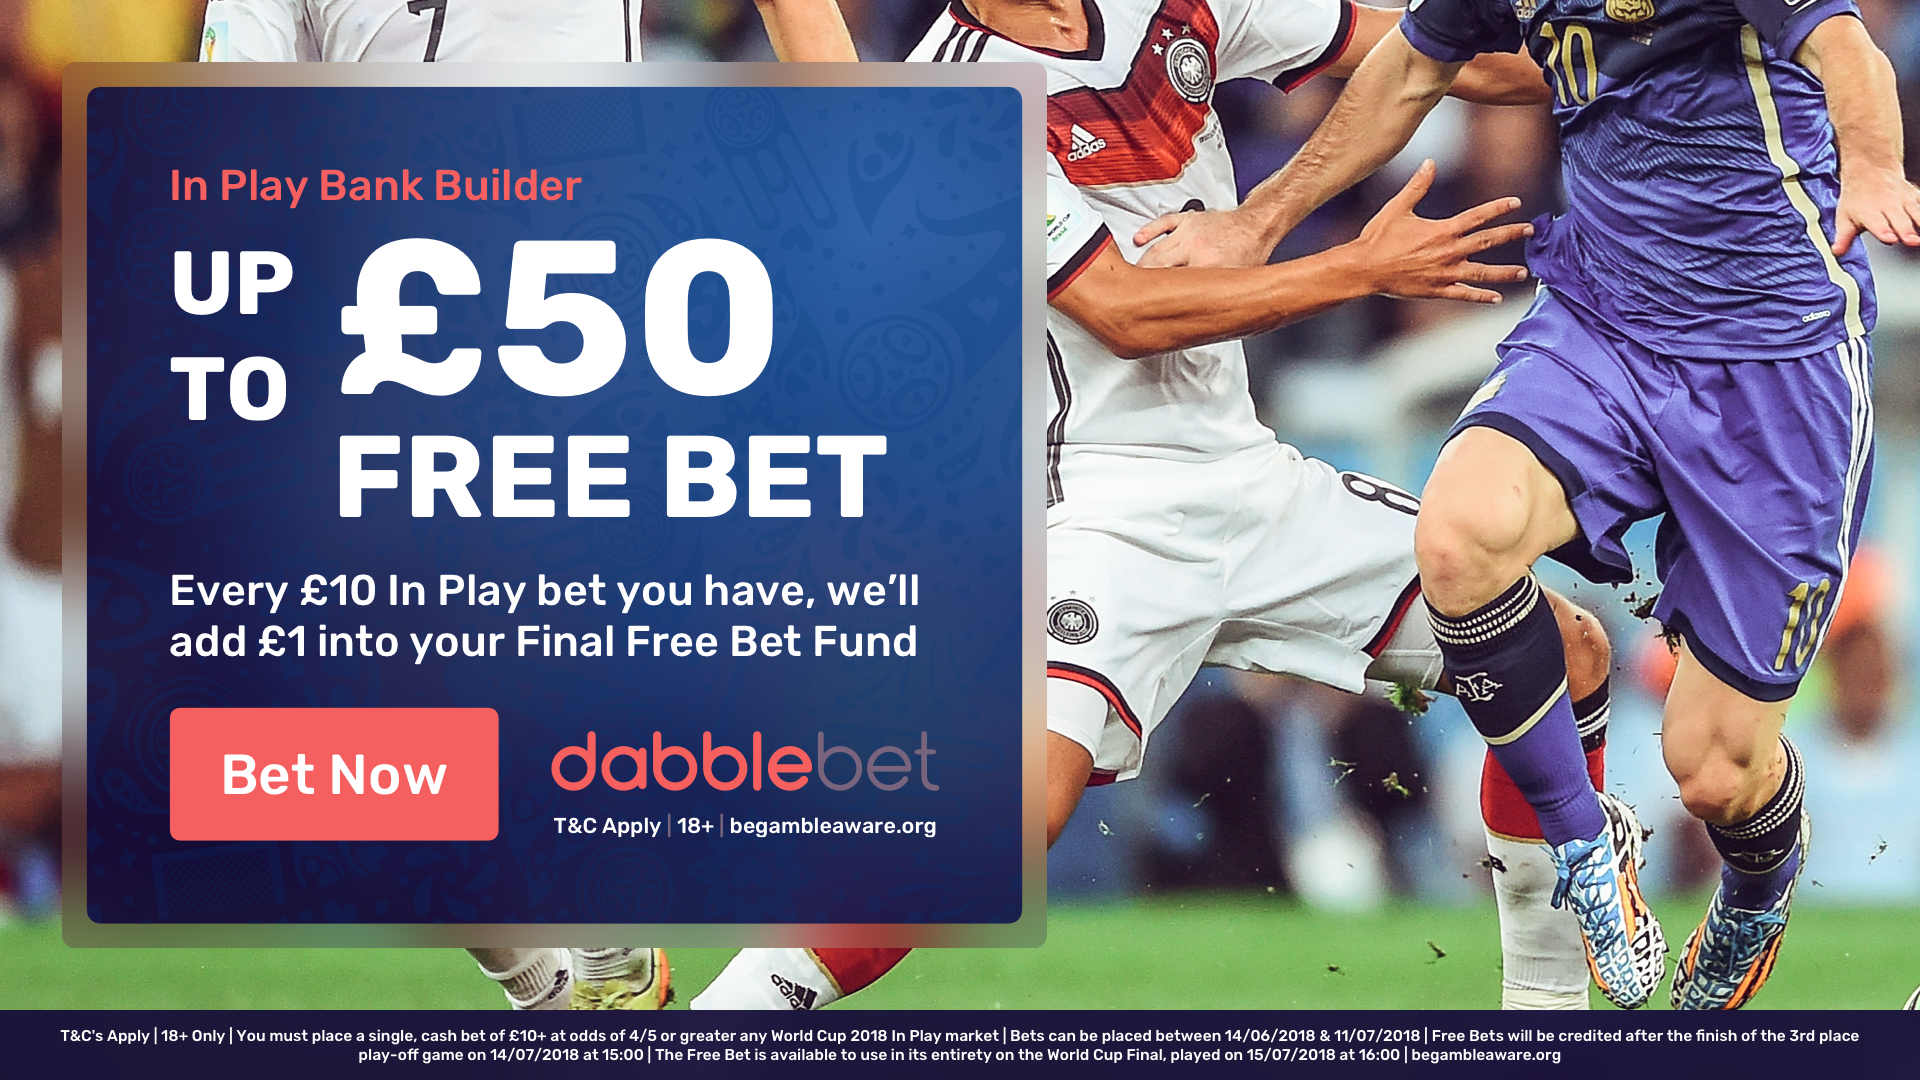 dabblebet in-play free bet World Cup final bank builder in article